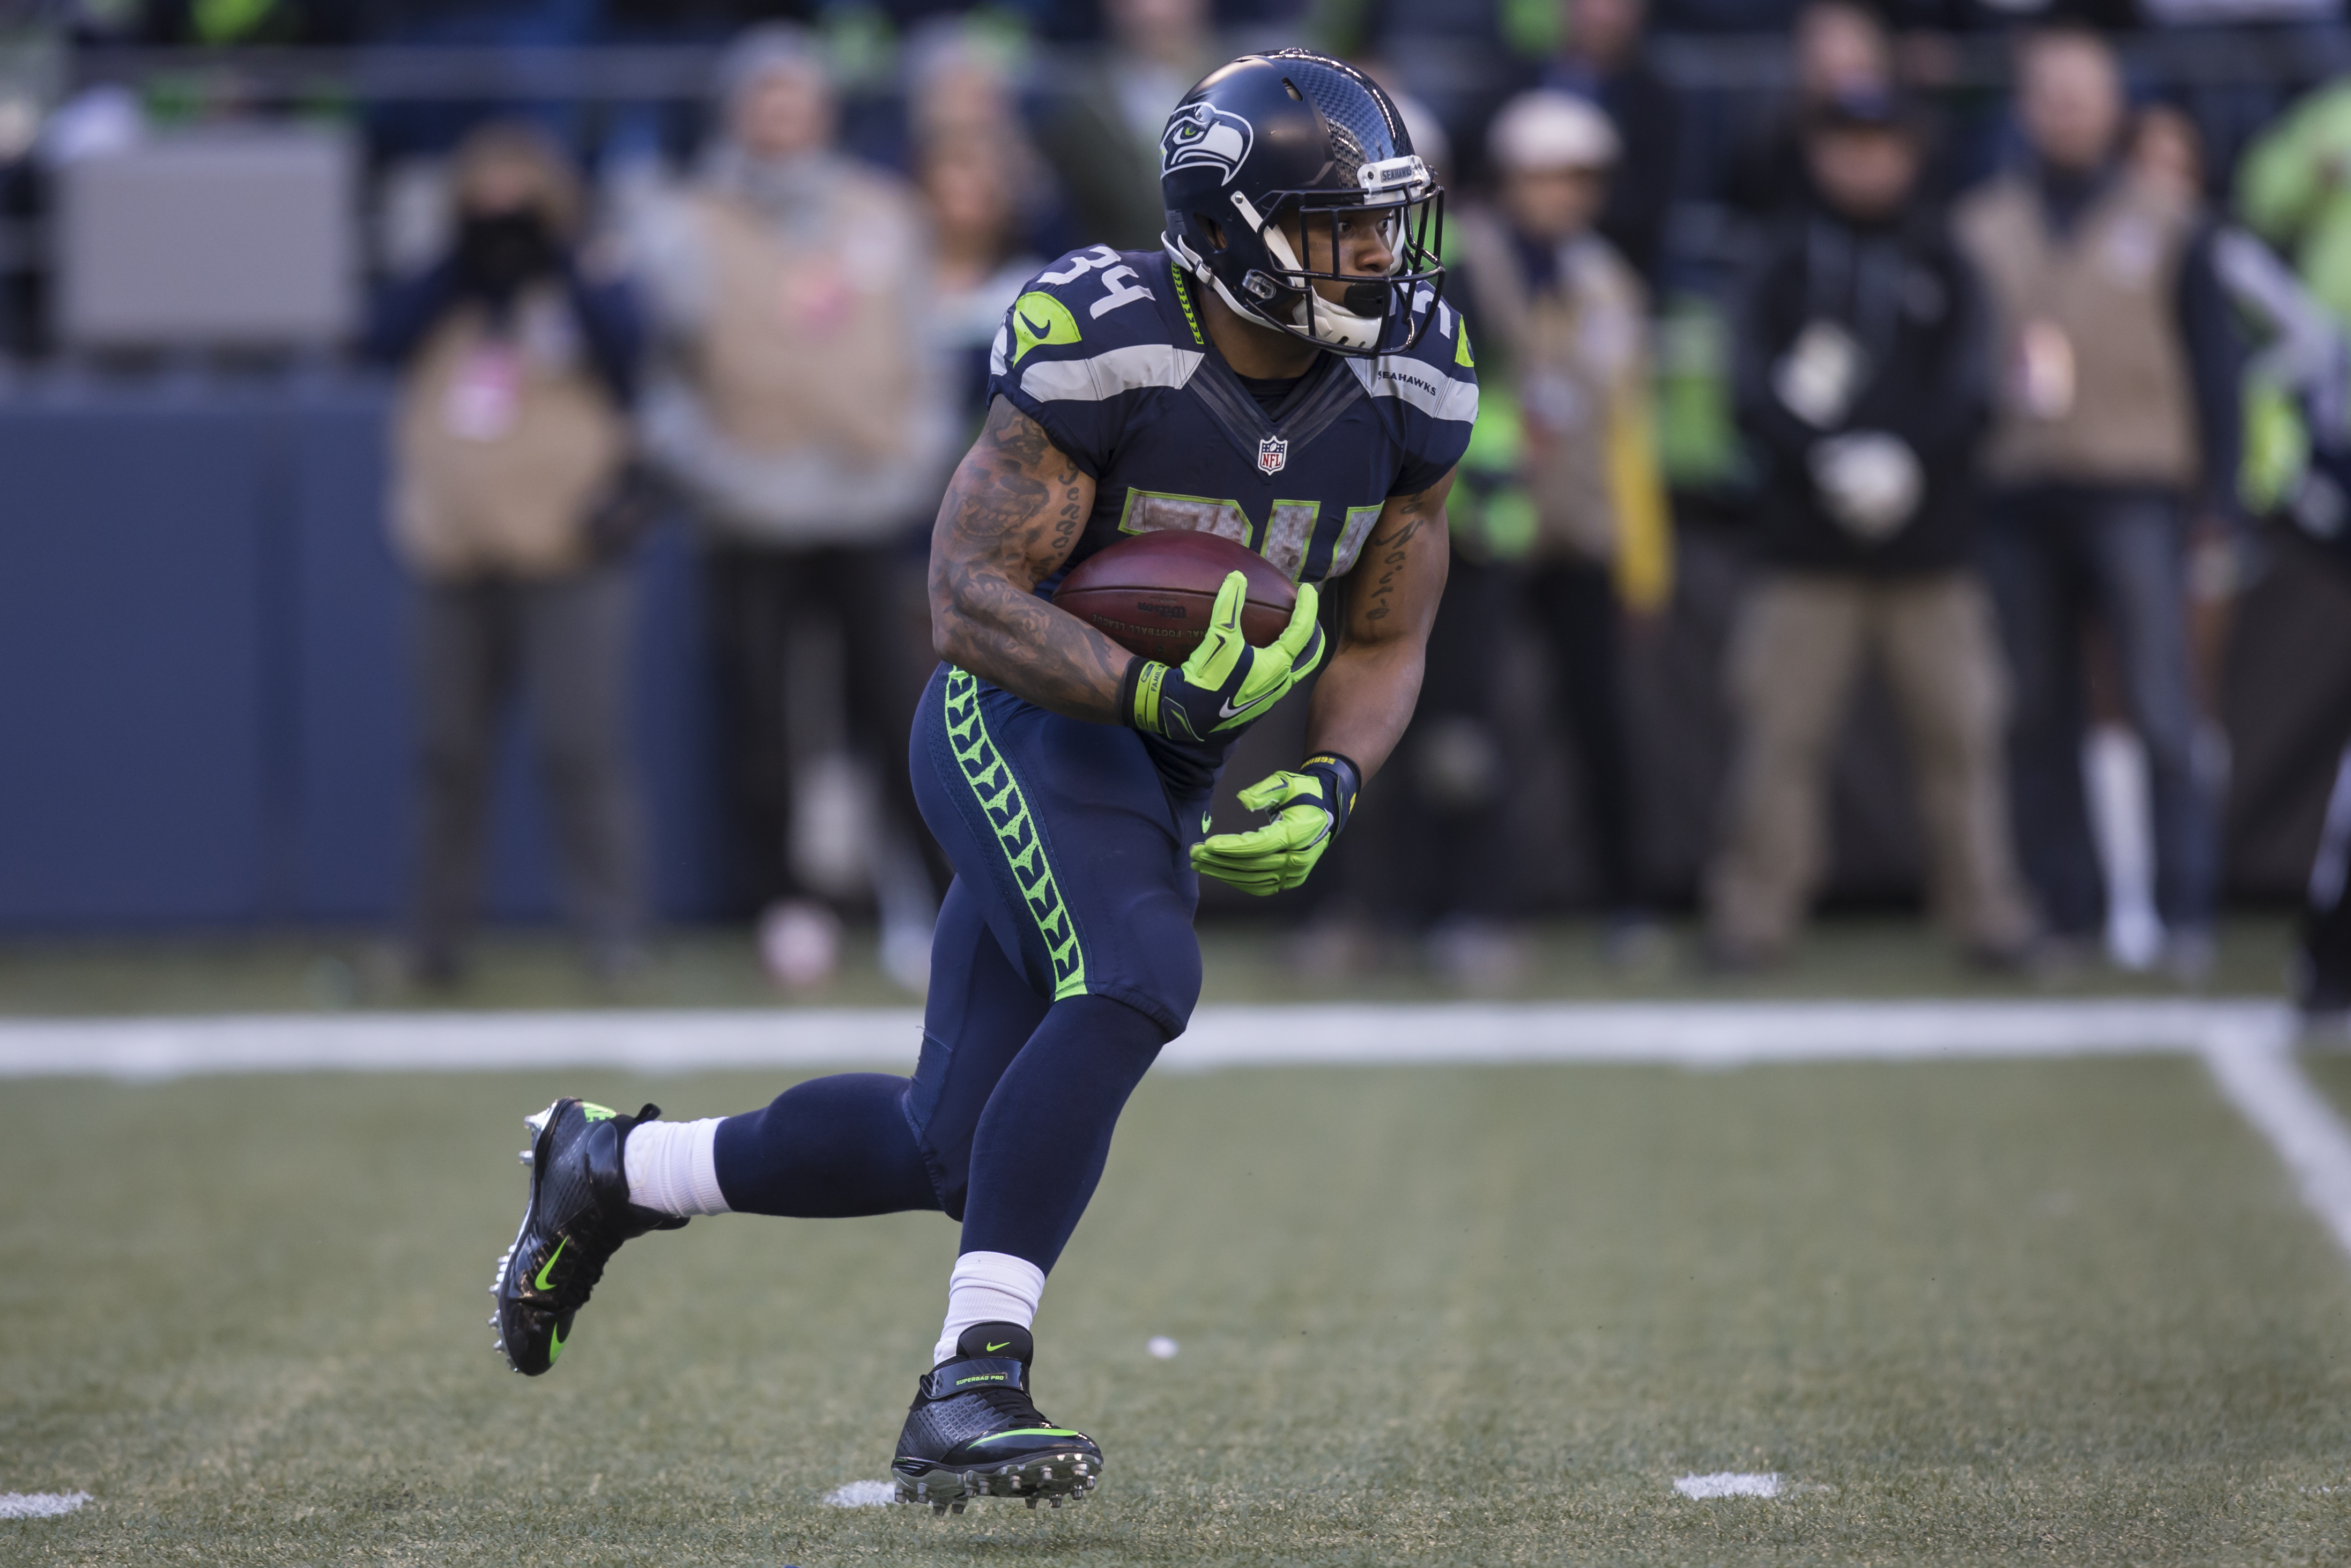 Thomas Rawls of the Seattle Seahawks runs with the ball against the San Francisco 49ers at CenturyLink Field on Nov. 22, 2015. (credit: Stephen Brashear/Getty Images)